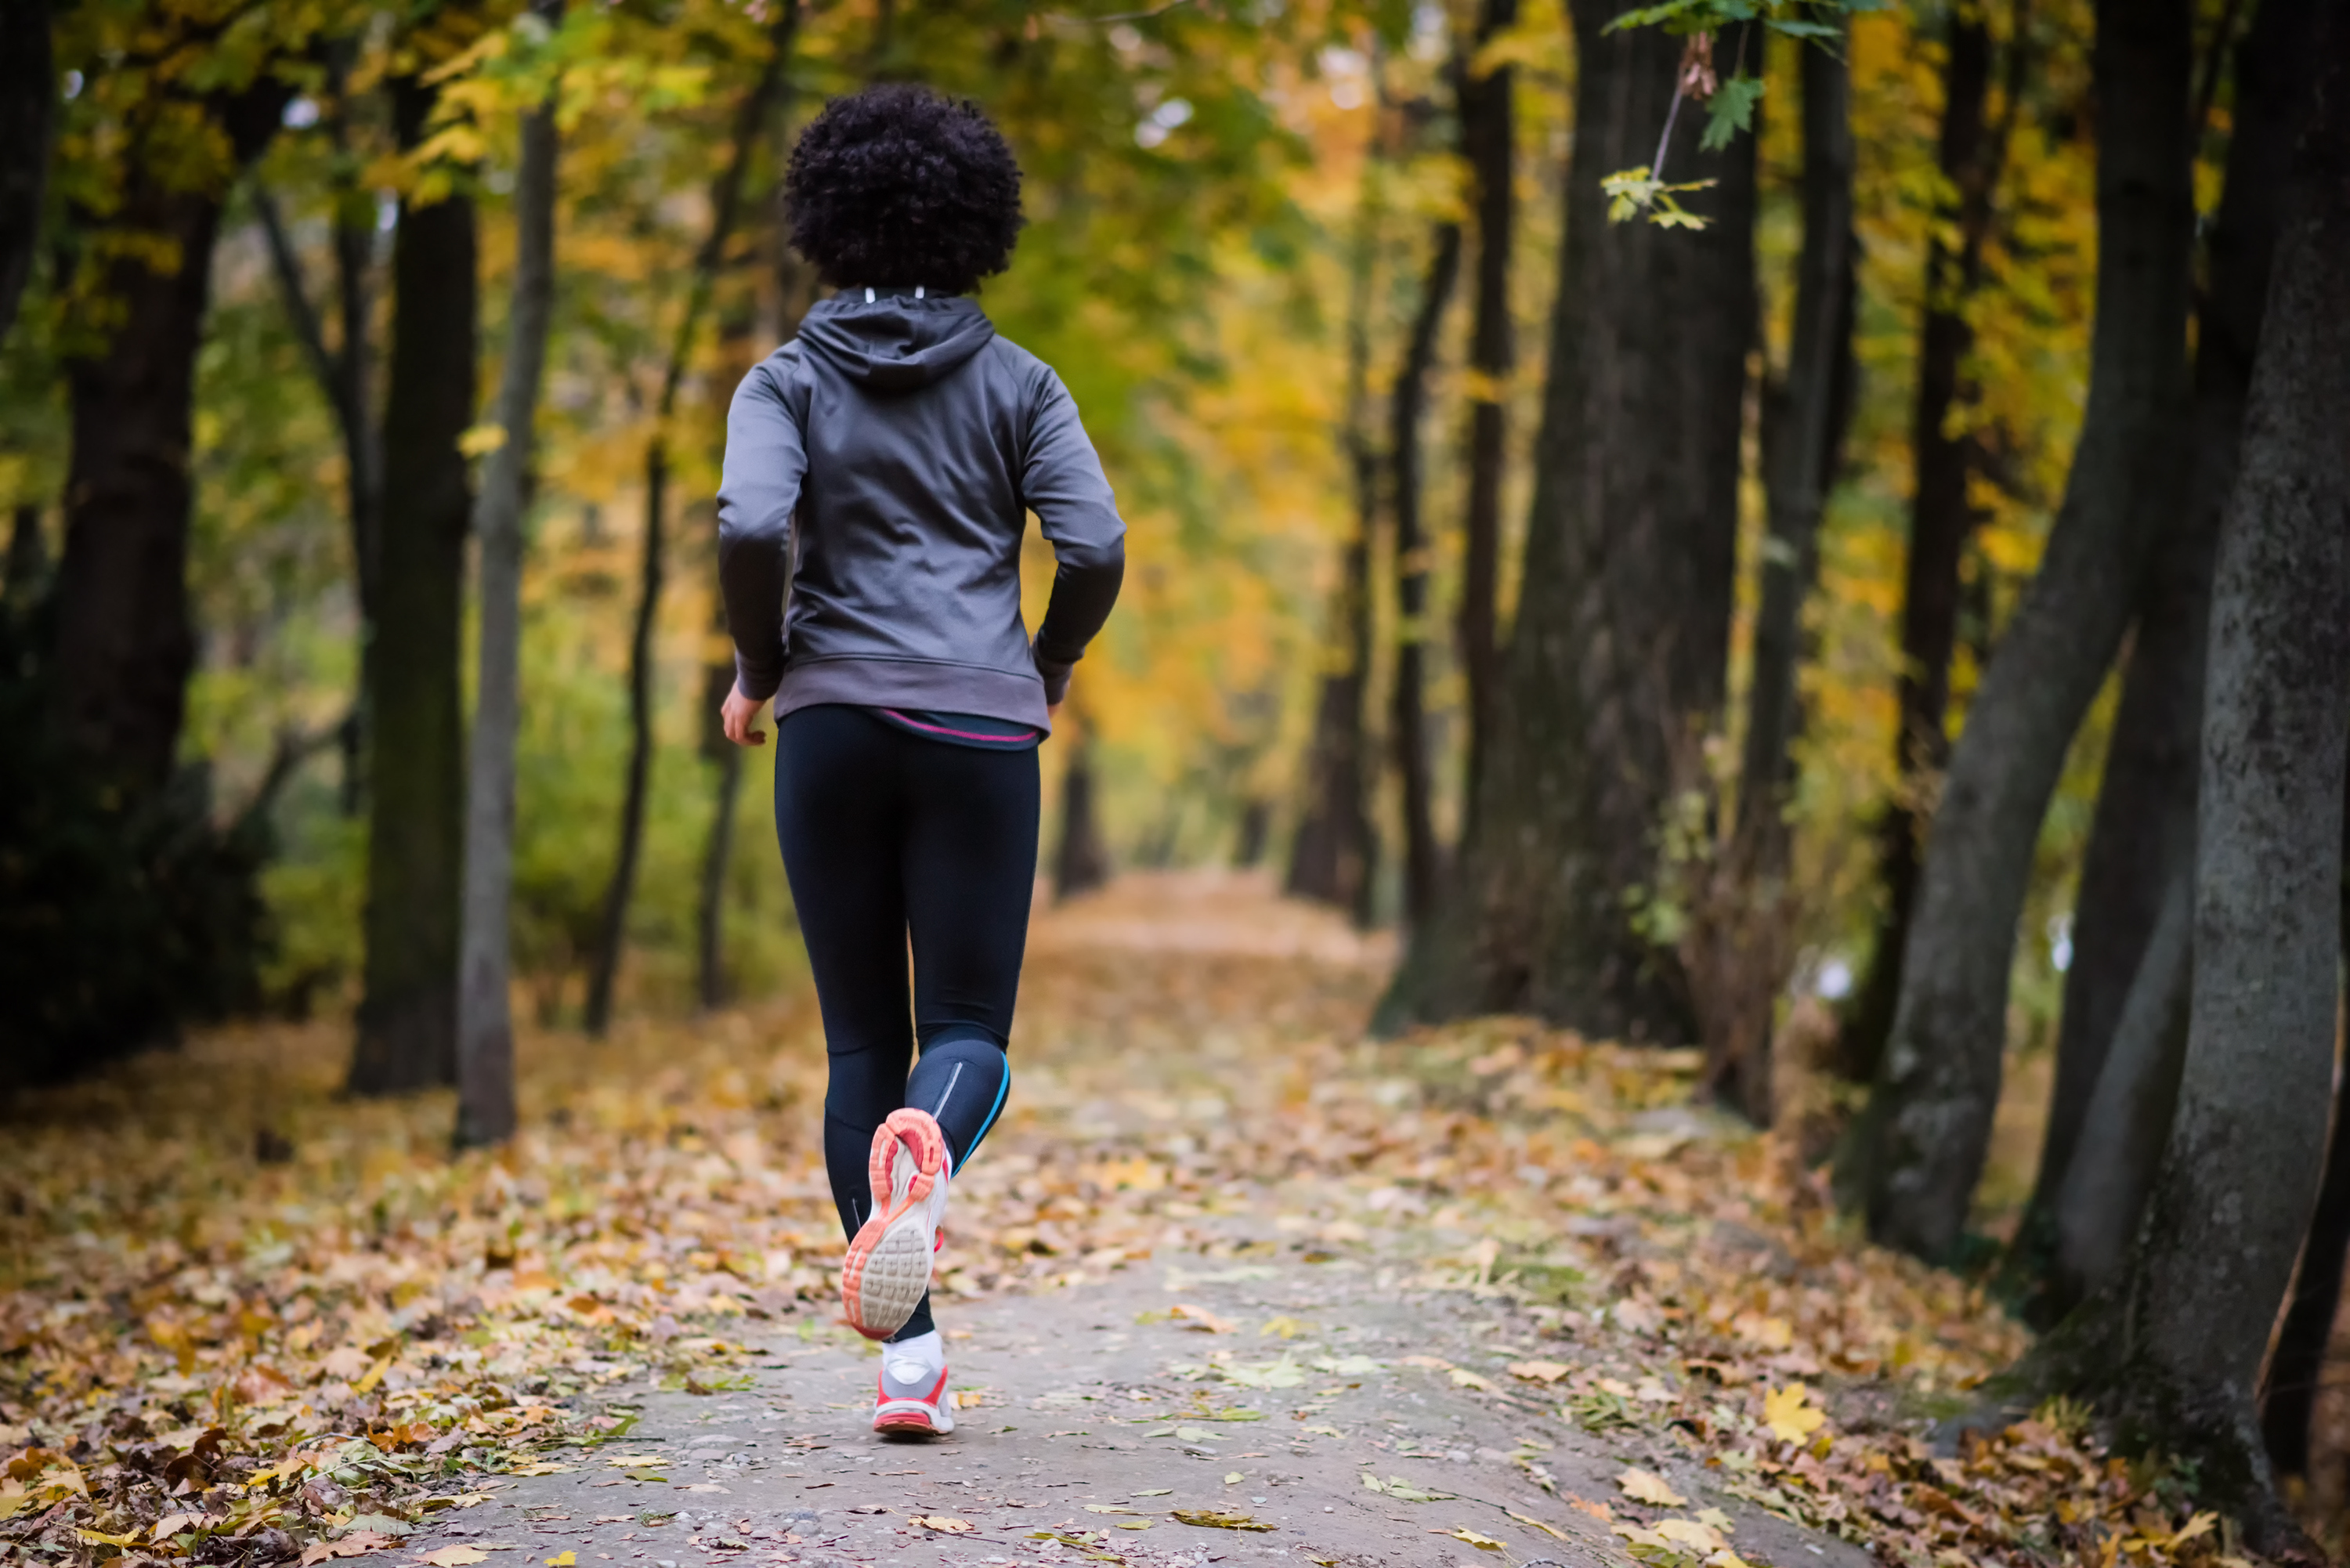 Running Jogging App 10 Safety Tips While Jogging Alone Crime Time